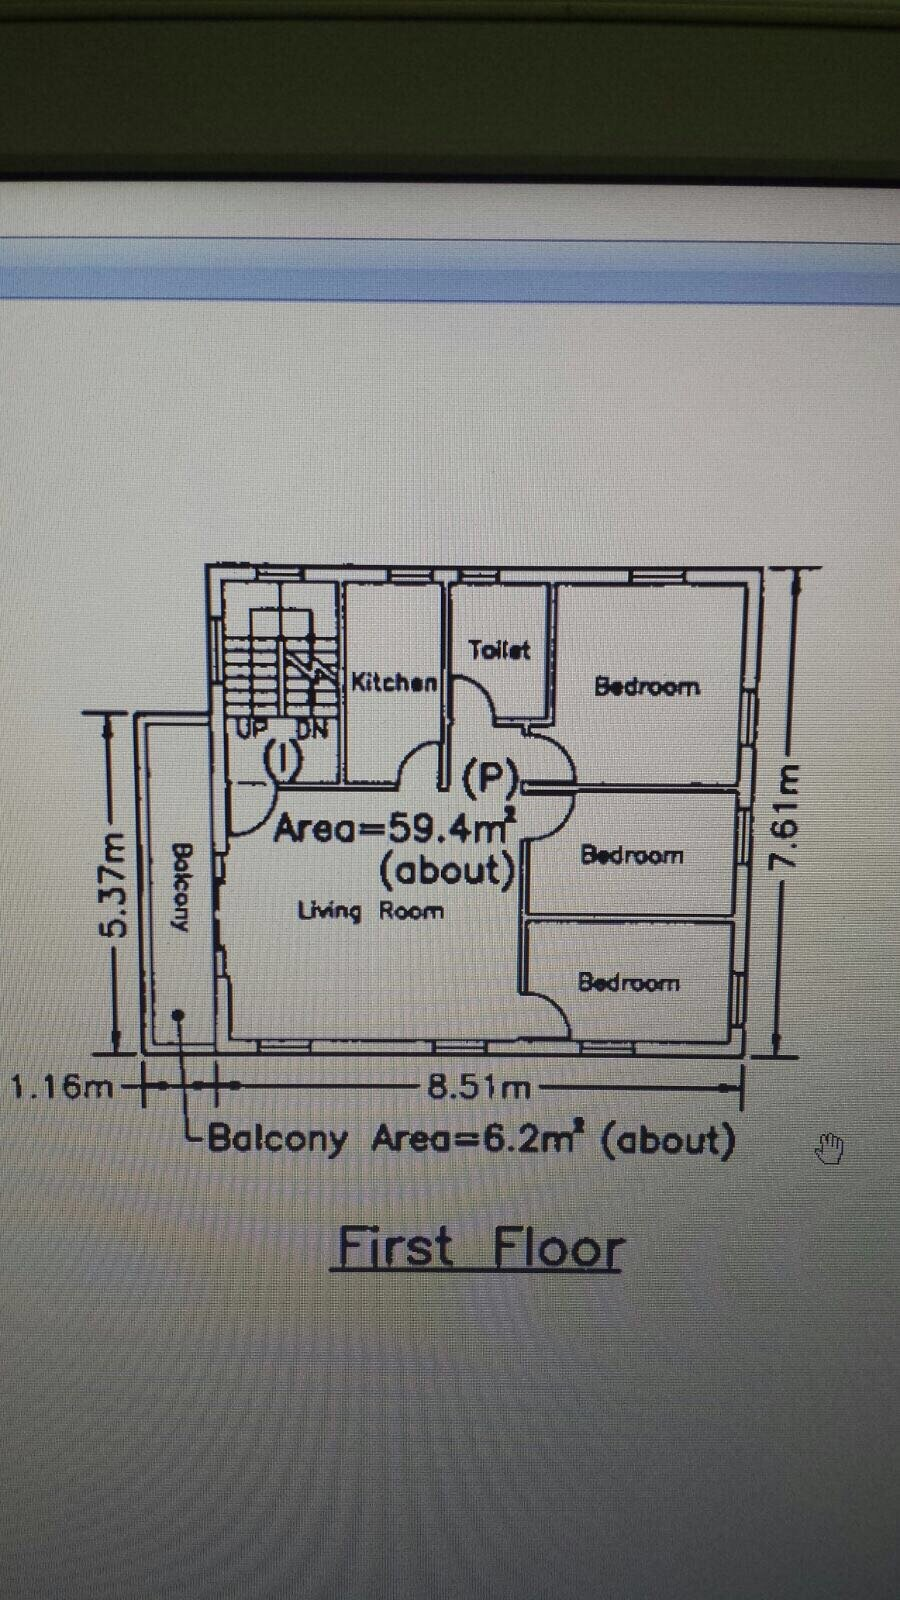 bid_deco_floorplan_1509173701.jpg